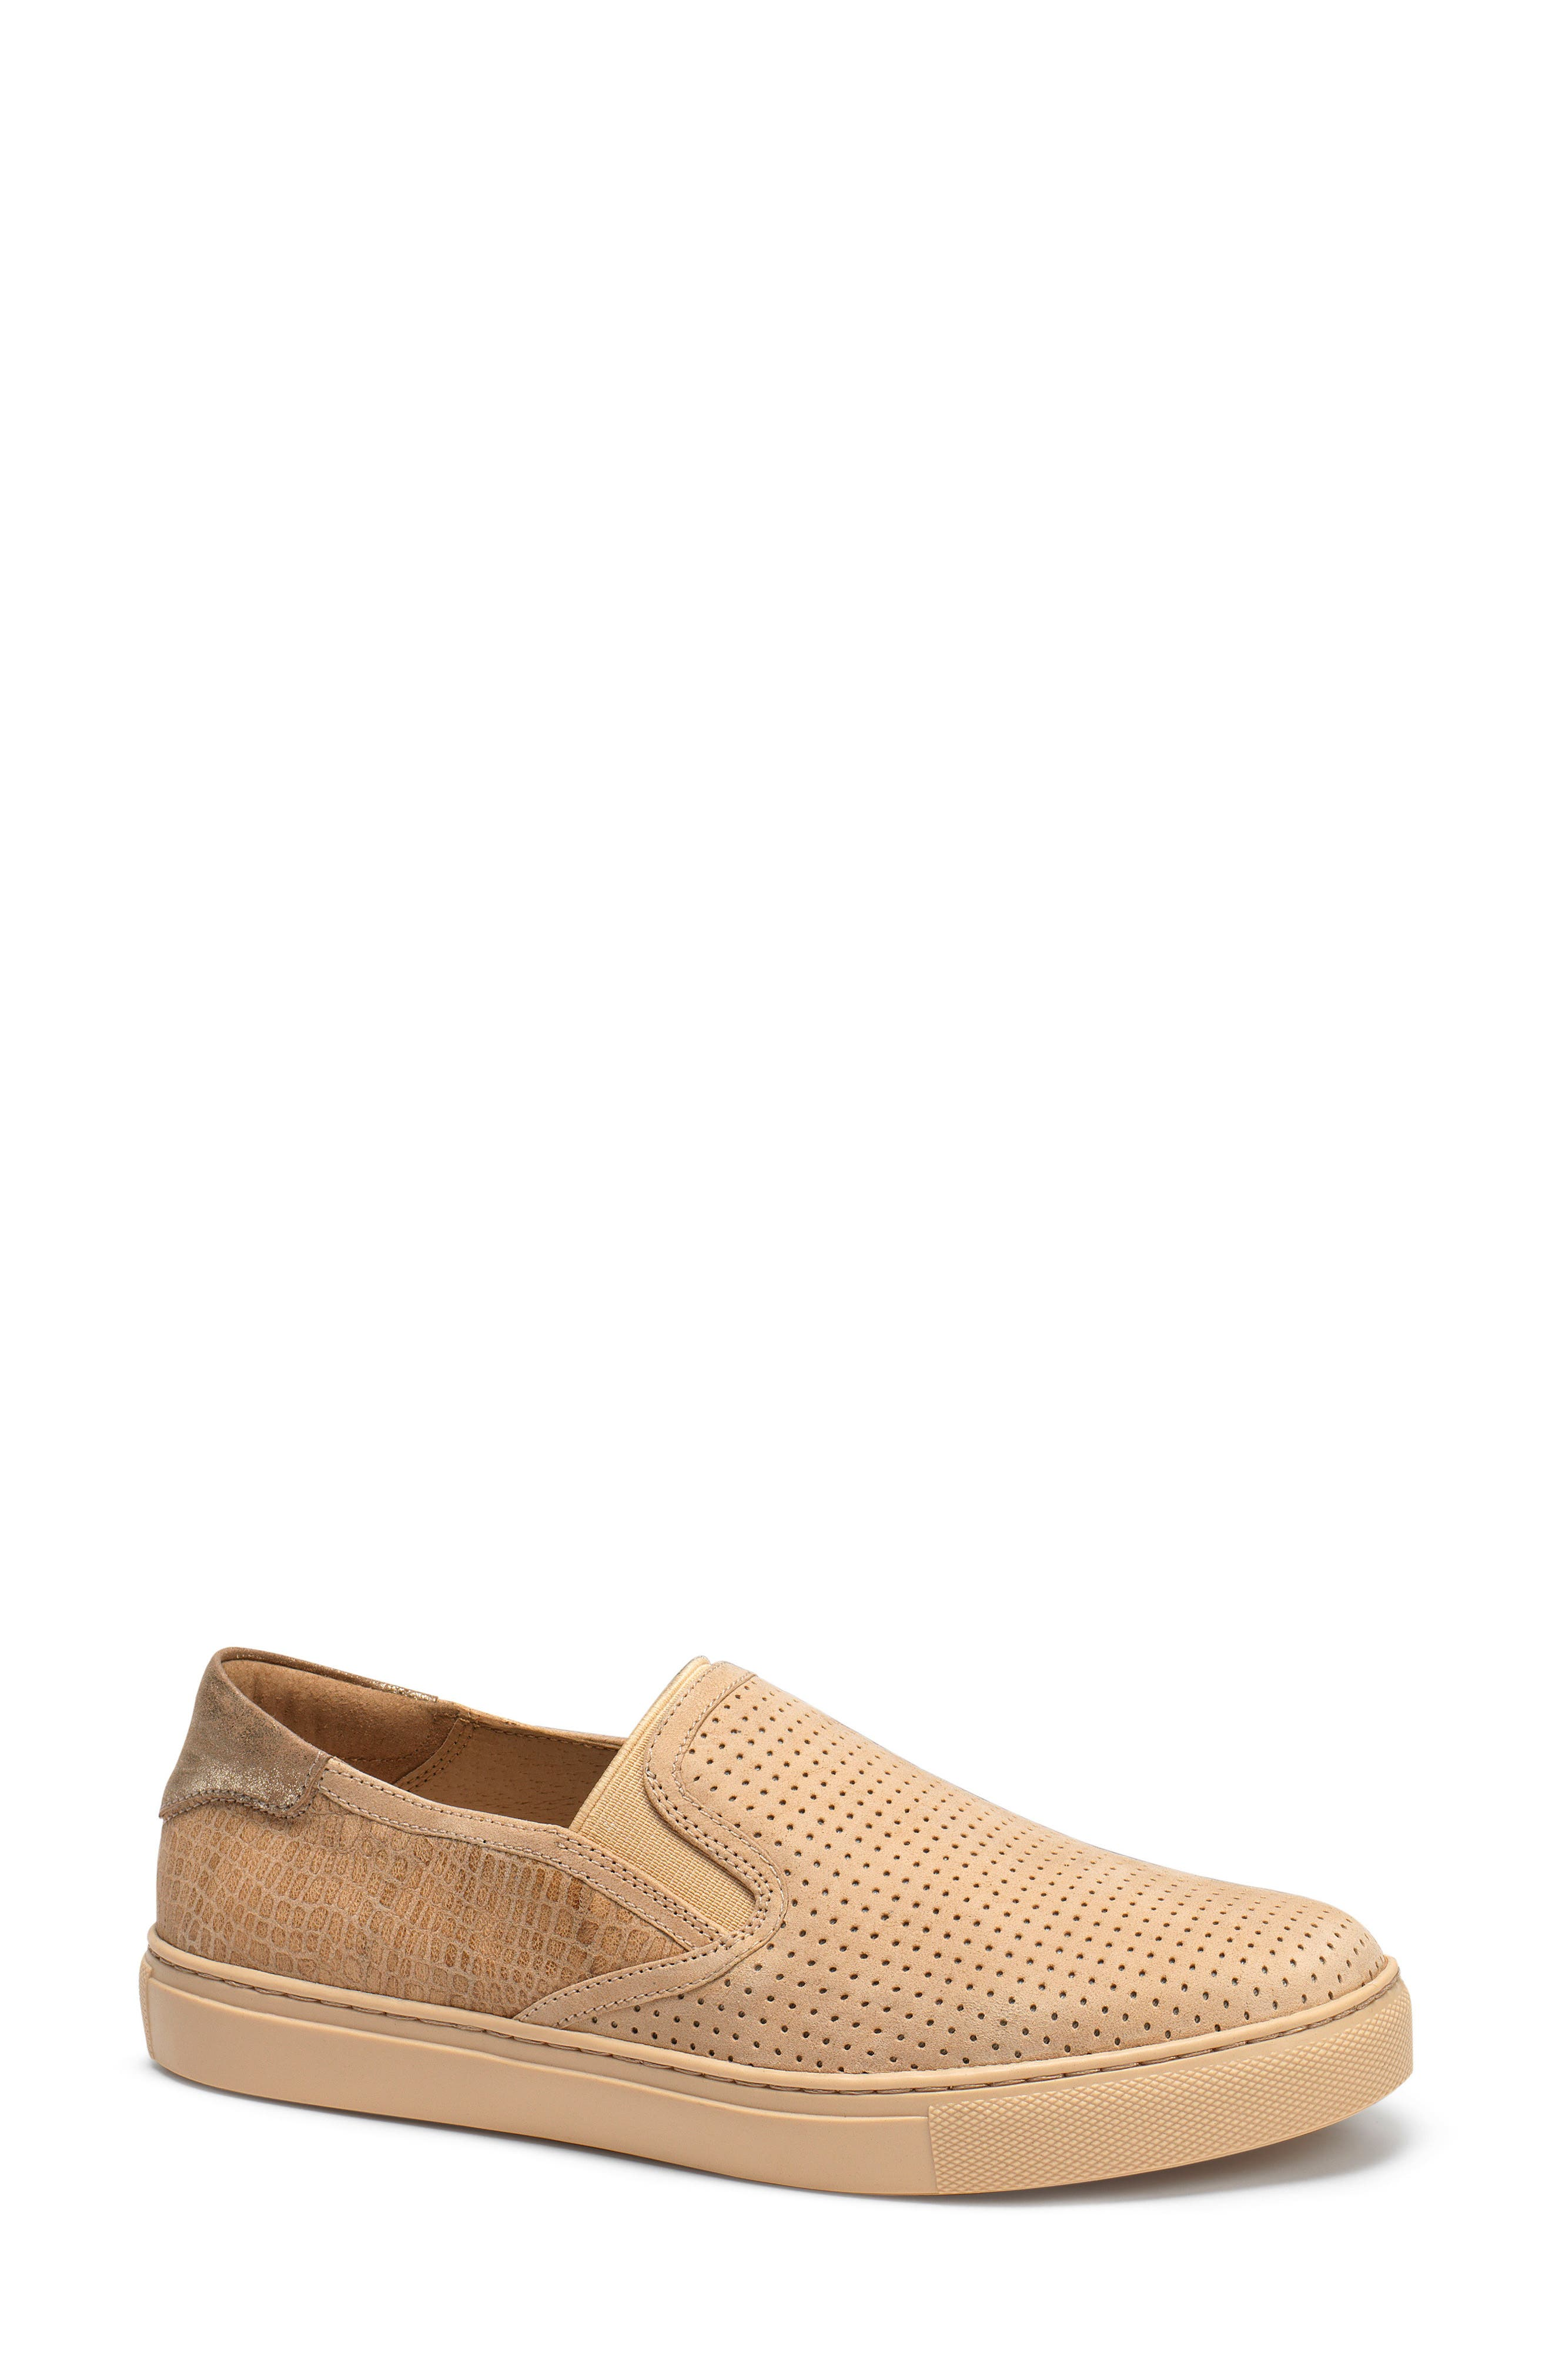 Lillian Water Resistant Slip-On Sneaker,                             Main thumbnail 1, color,                             Beige Leather